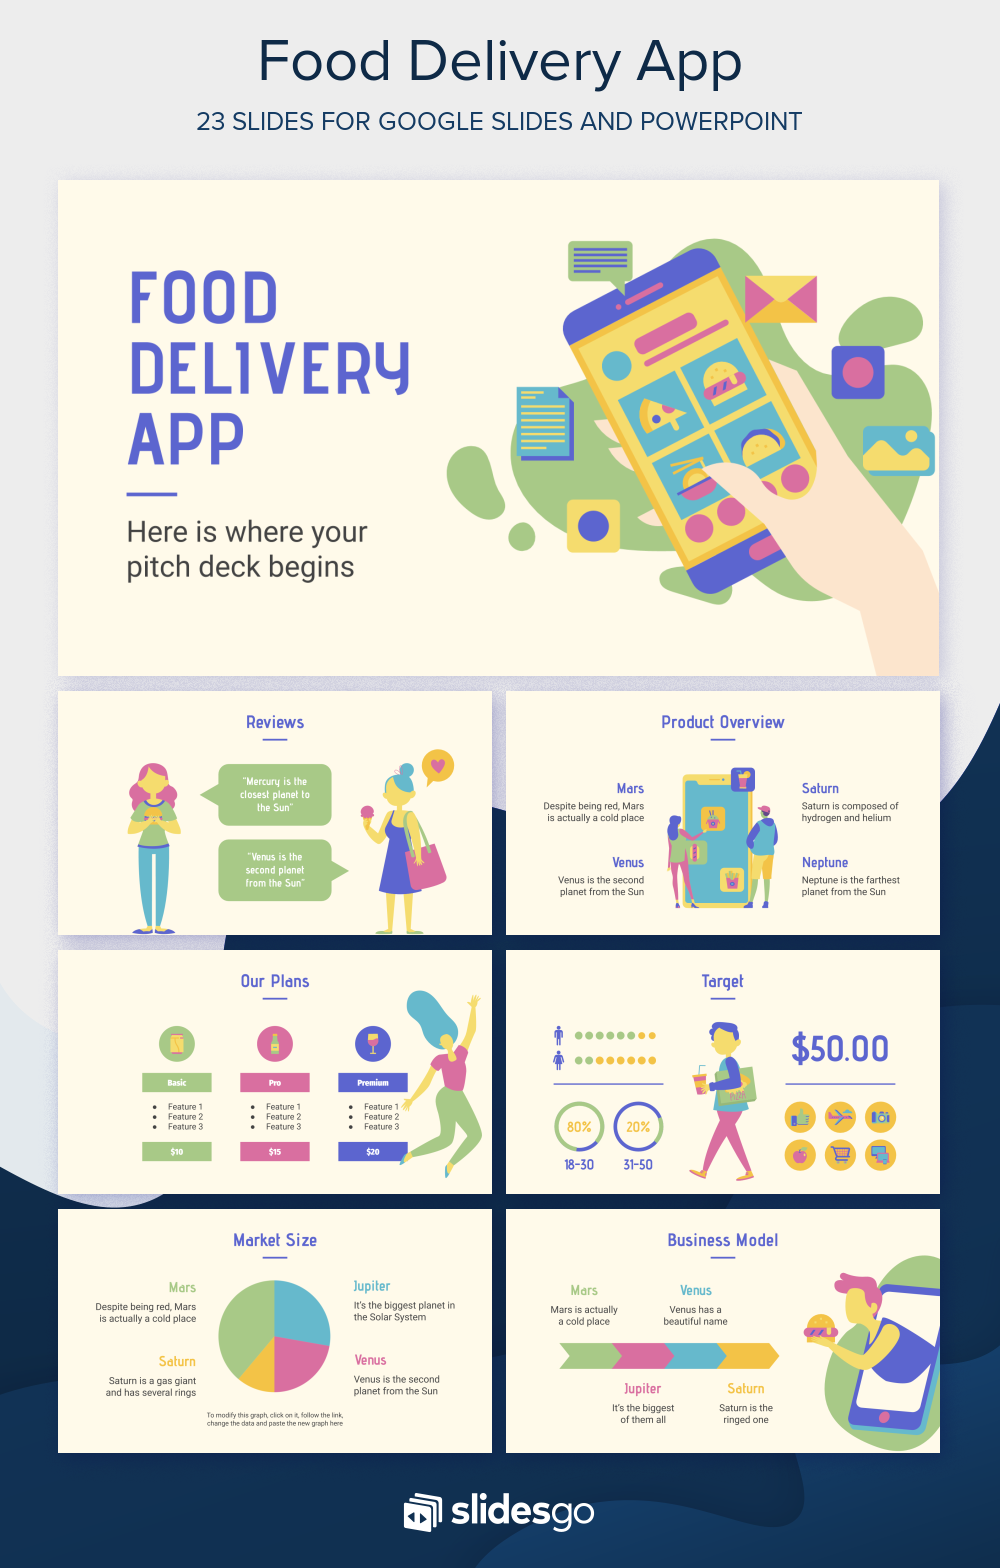 Food Delivery App Google Slides Theme And Powerpoint Template Delivery Food Powerpoint Presentation Design Powerpoint Design Templates Powerpoint Templates